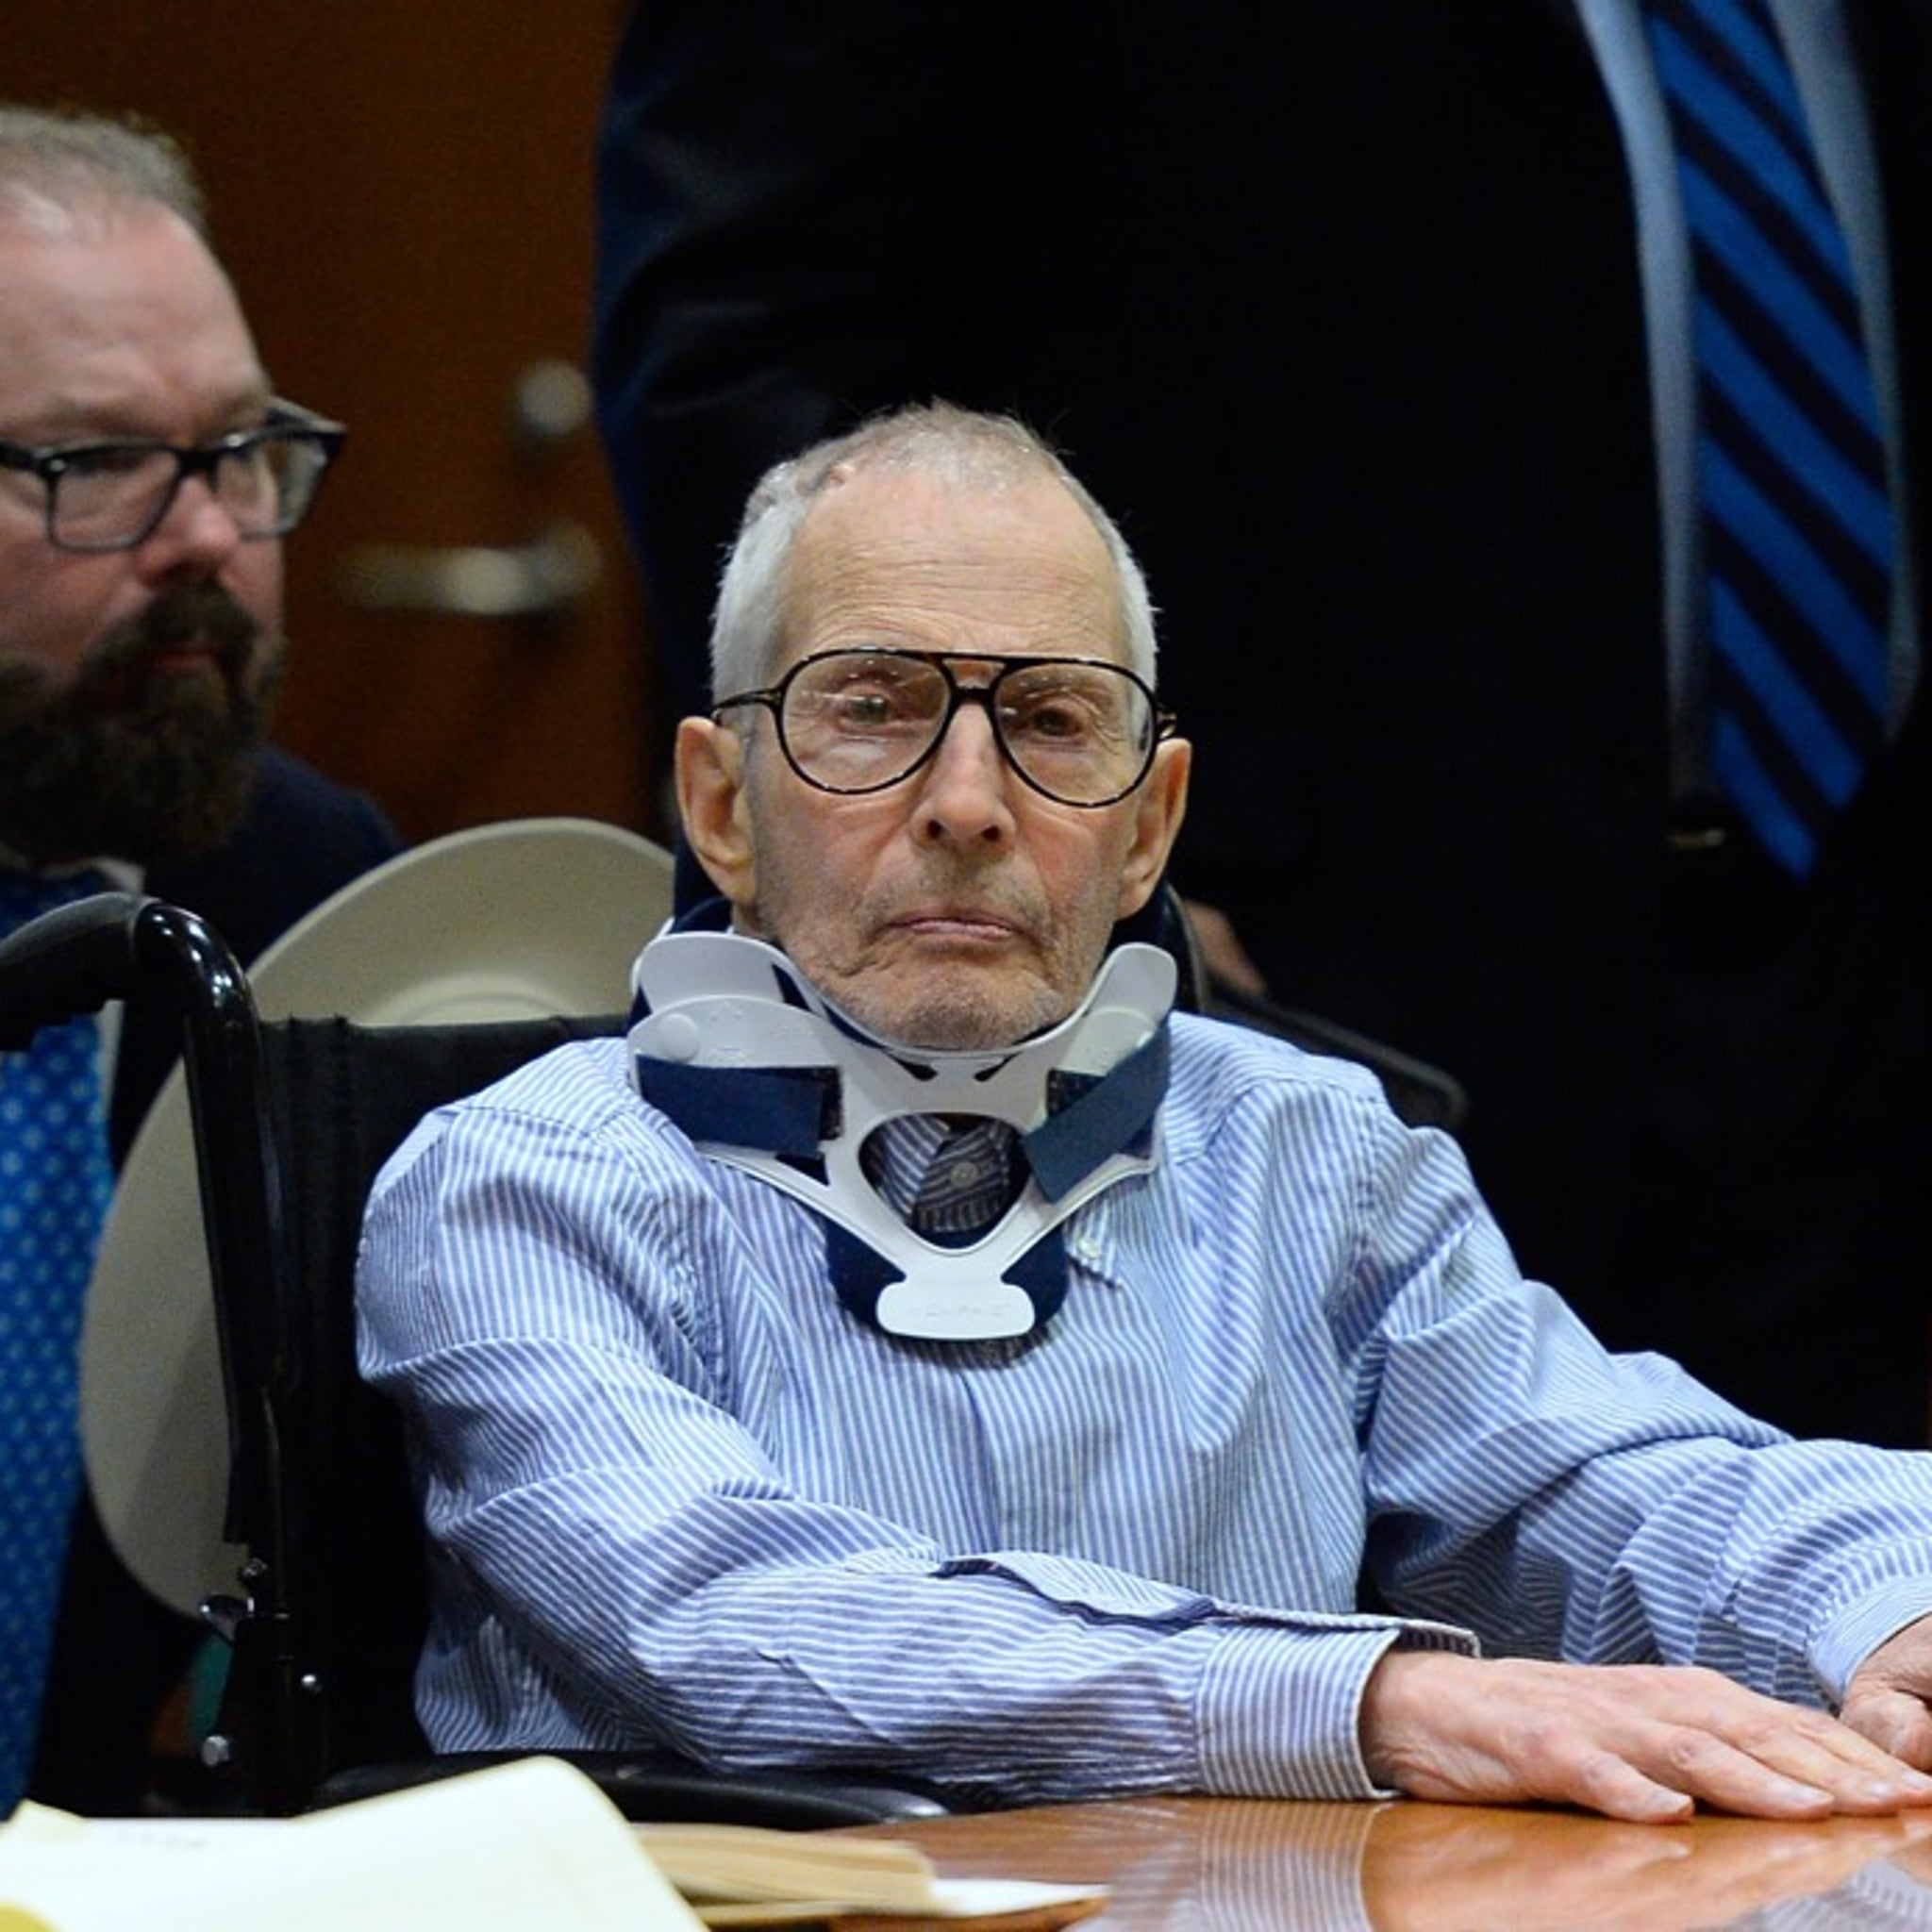 Robert Durst Wins Lawsuit Against Estate of Wife He Allegedly Murdered